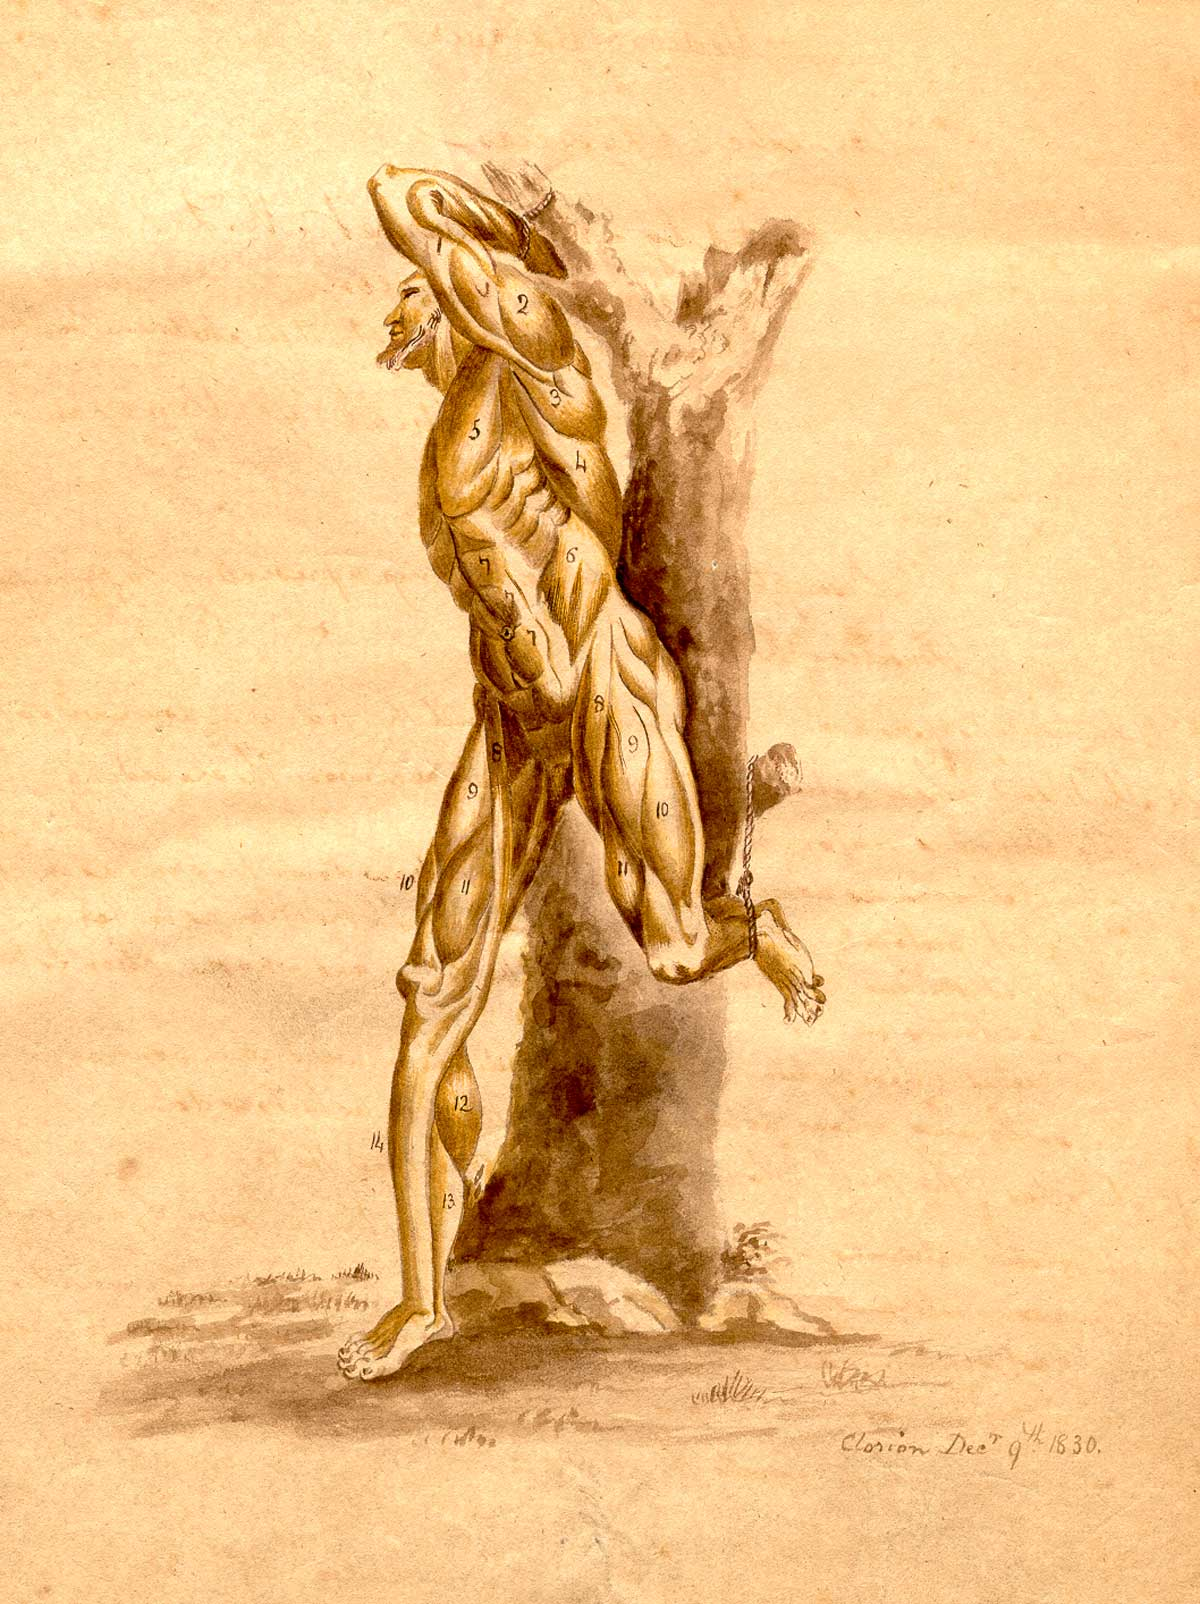 Historical Anatomies on the Web: Clorion